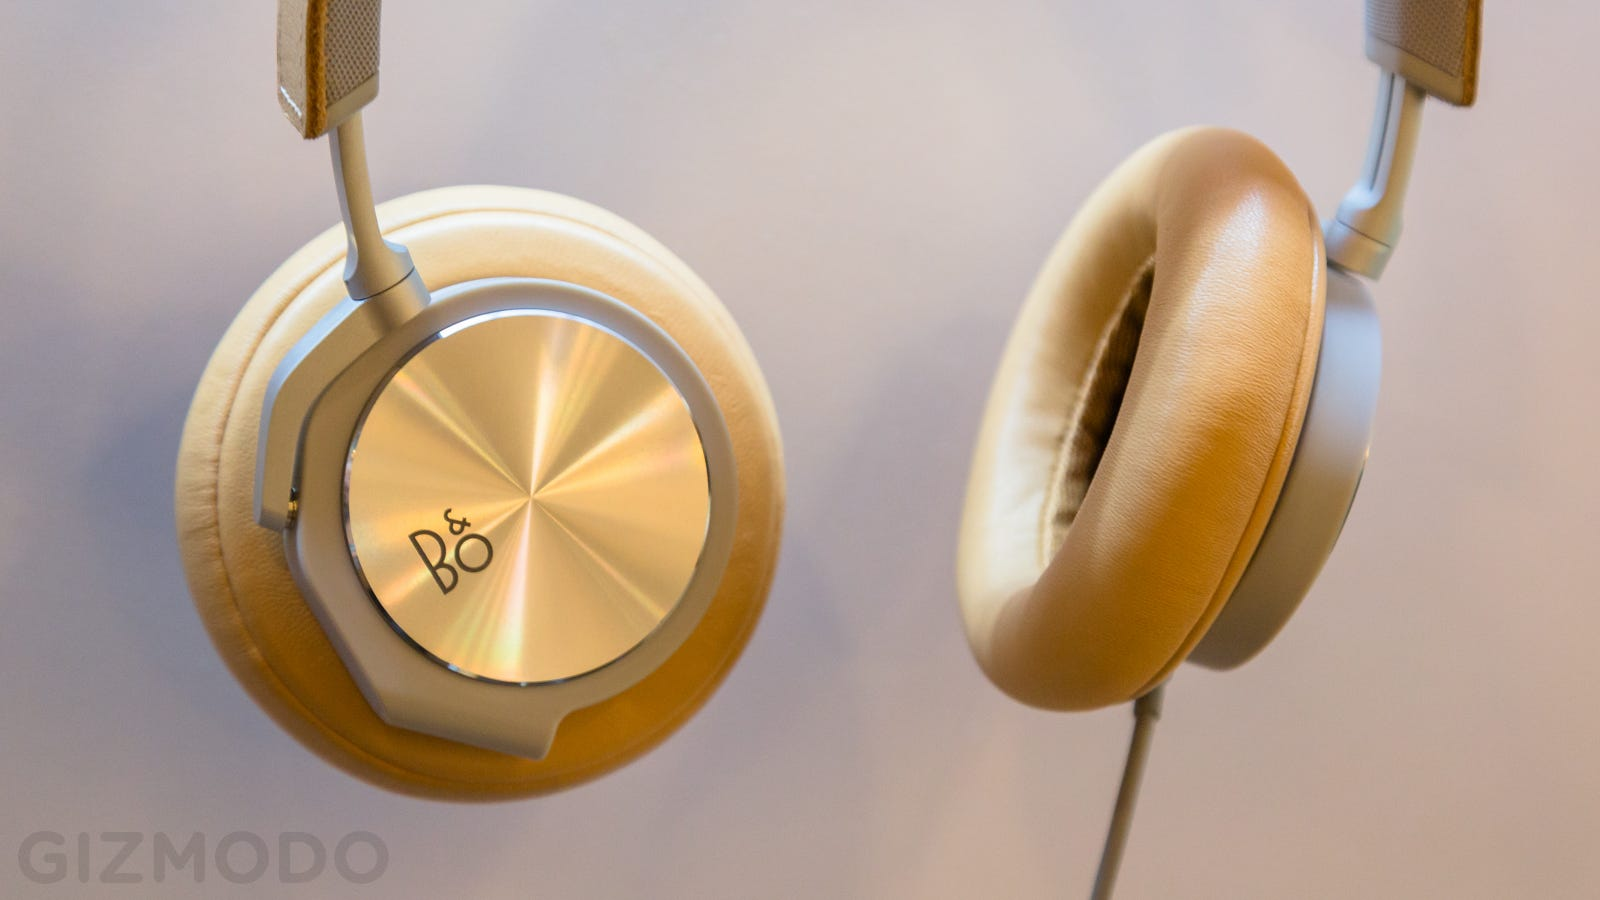 phillips earbuds pink - B&O H6 Headphones Are So Beautiful and Fancy They'll Fool Your Brain